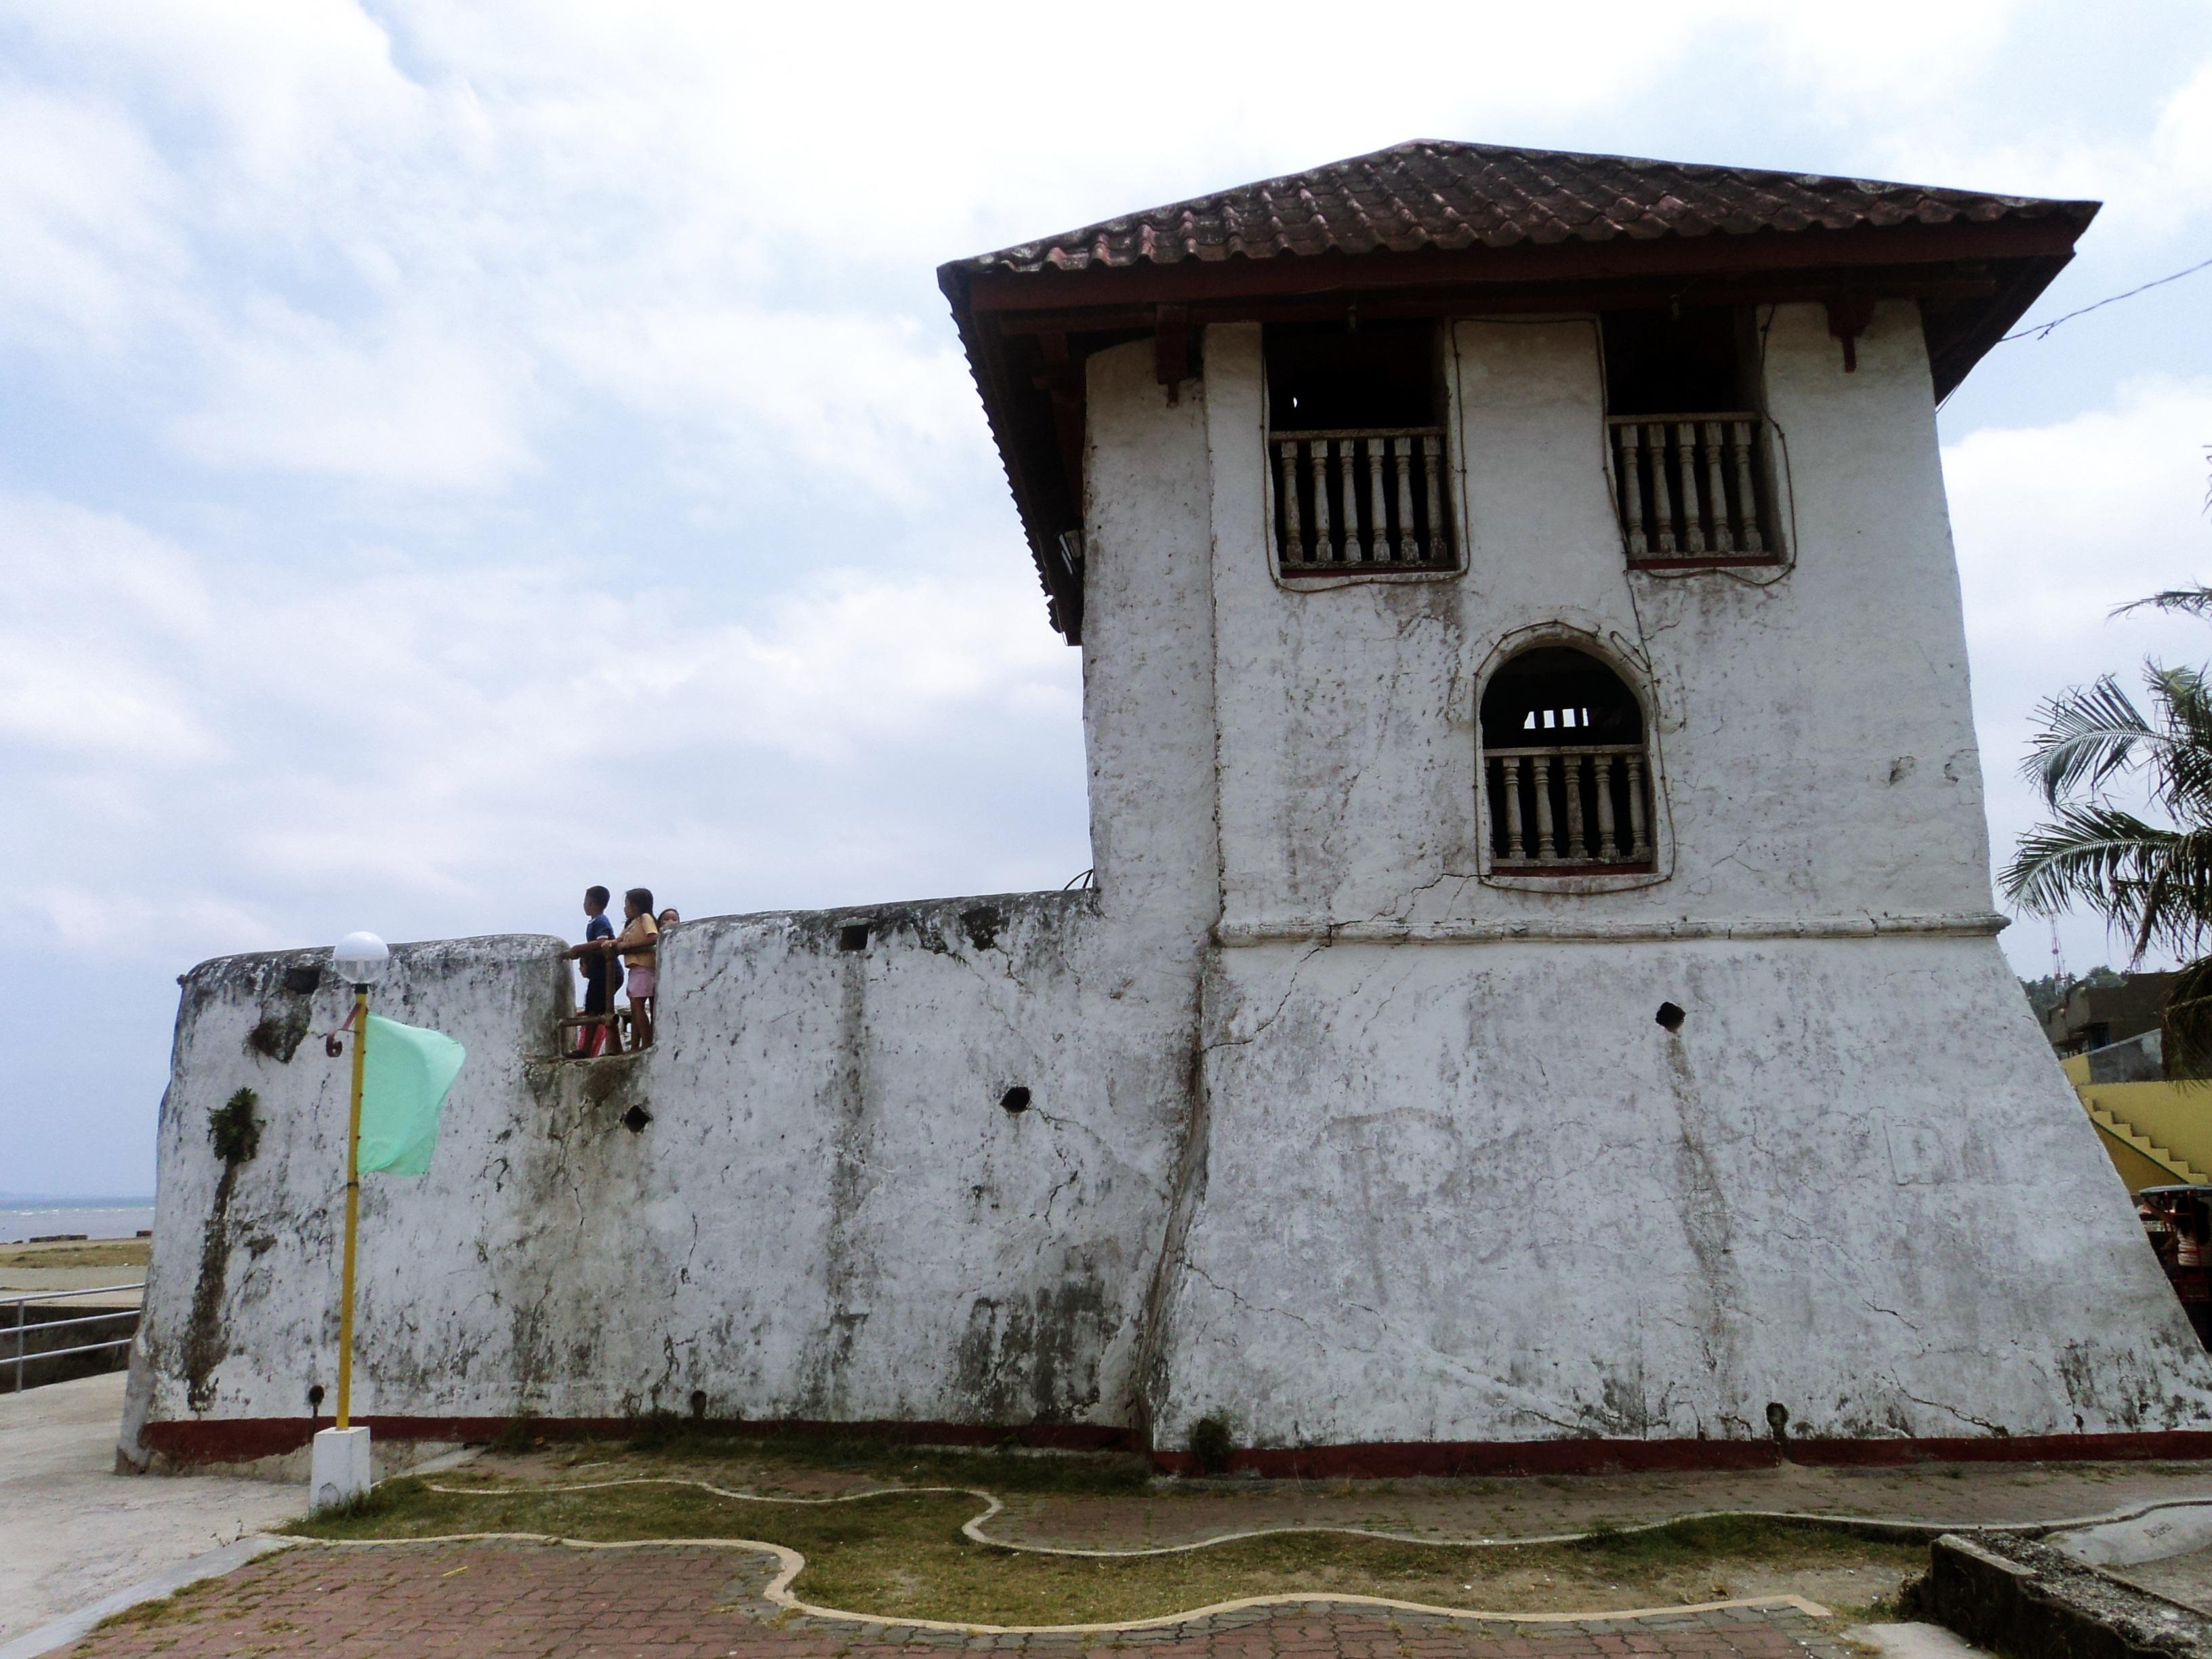 Quezon Province's Historical Attractions